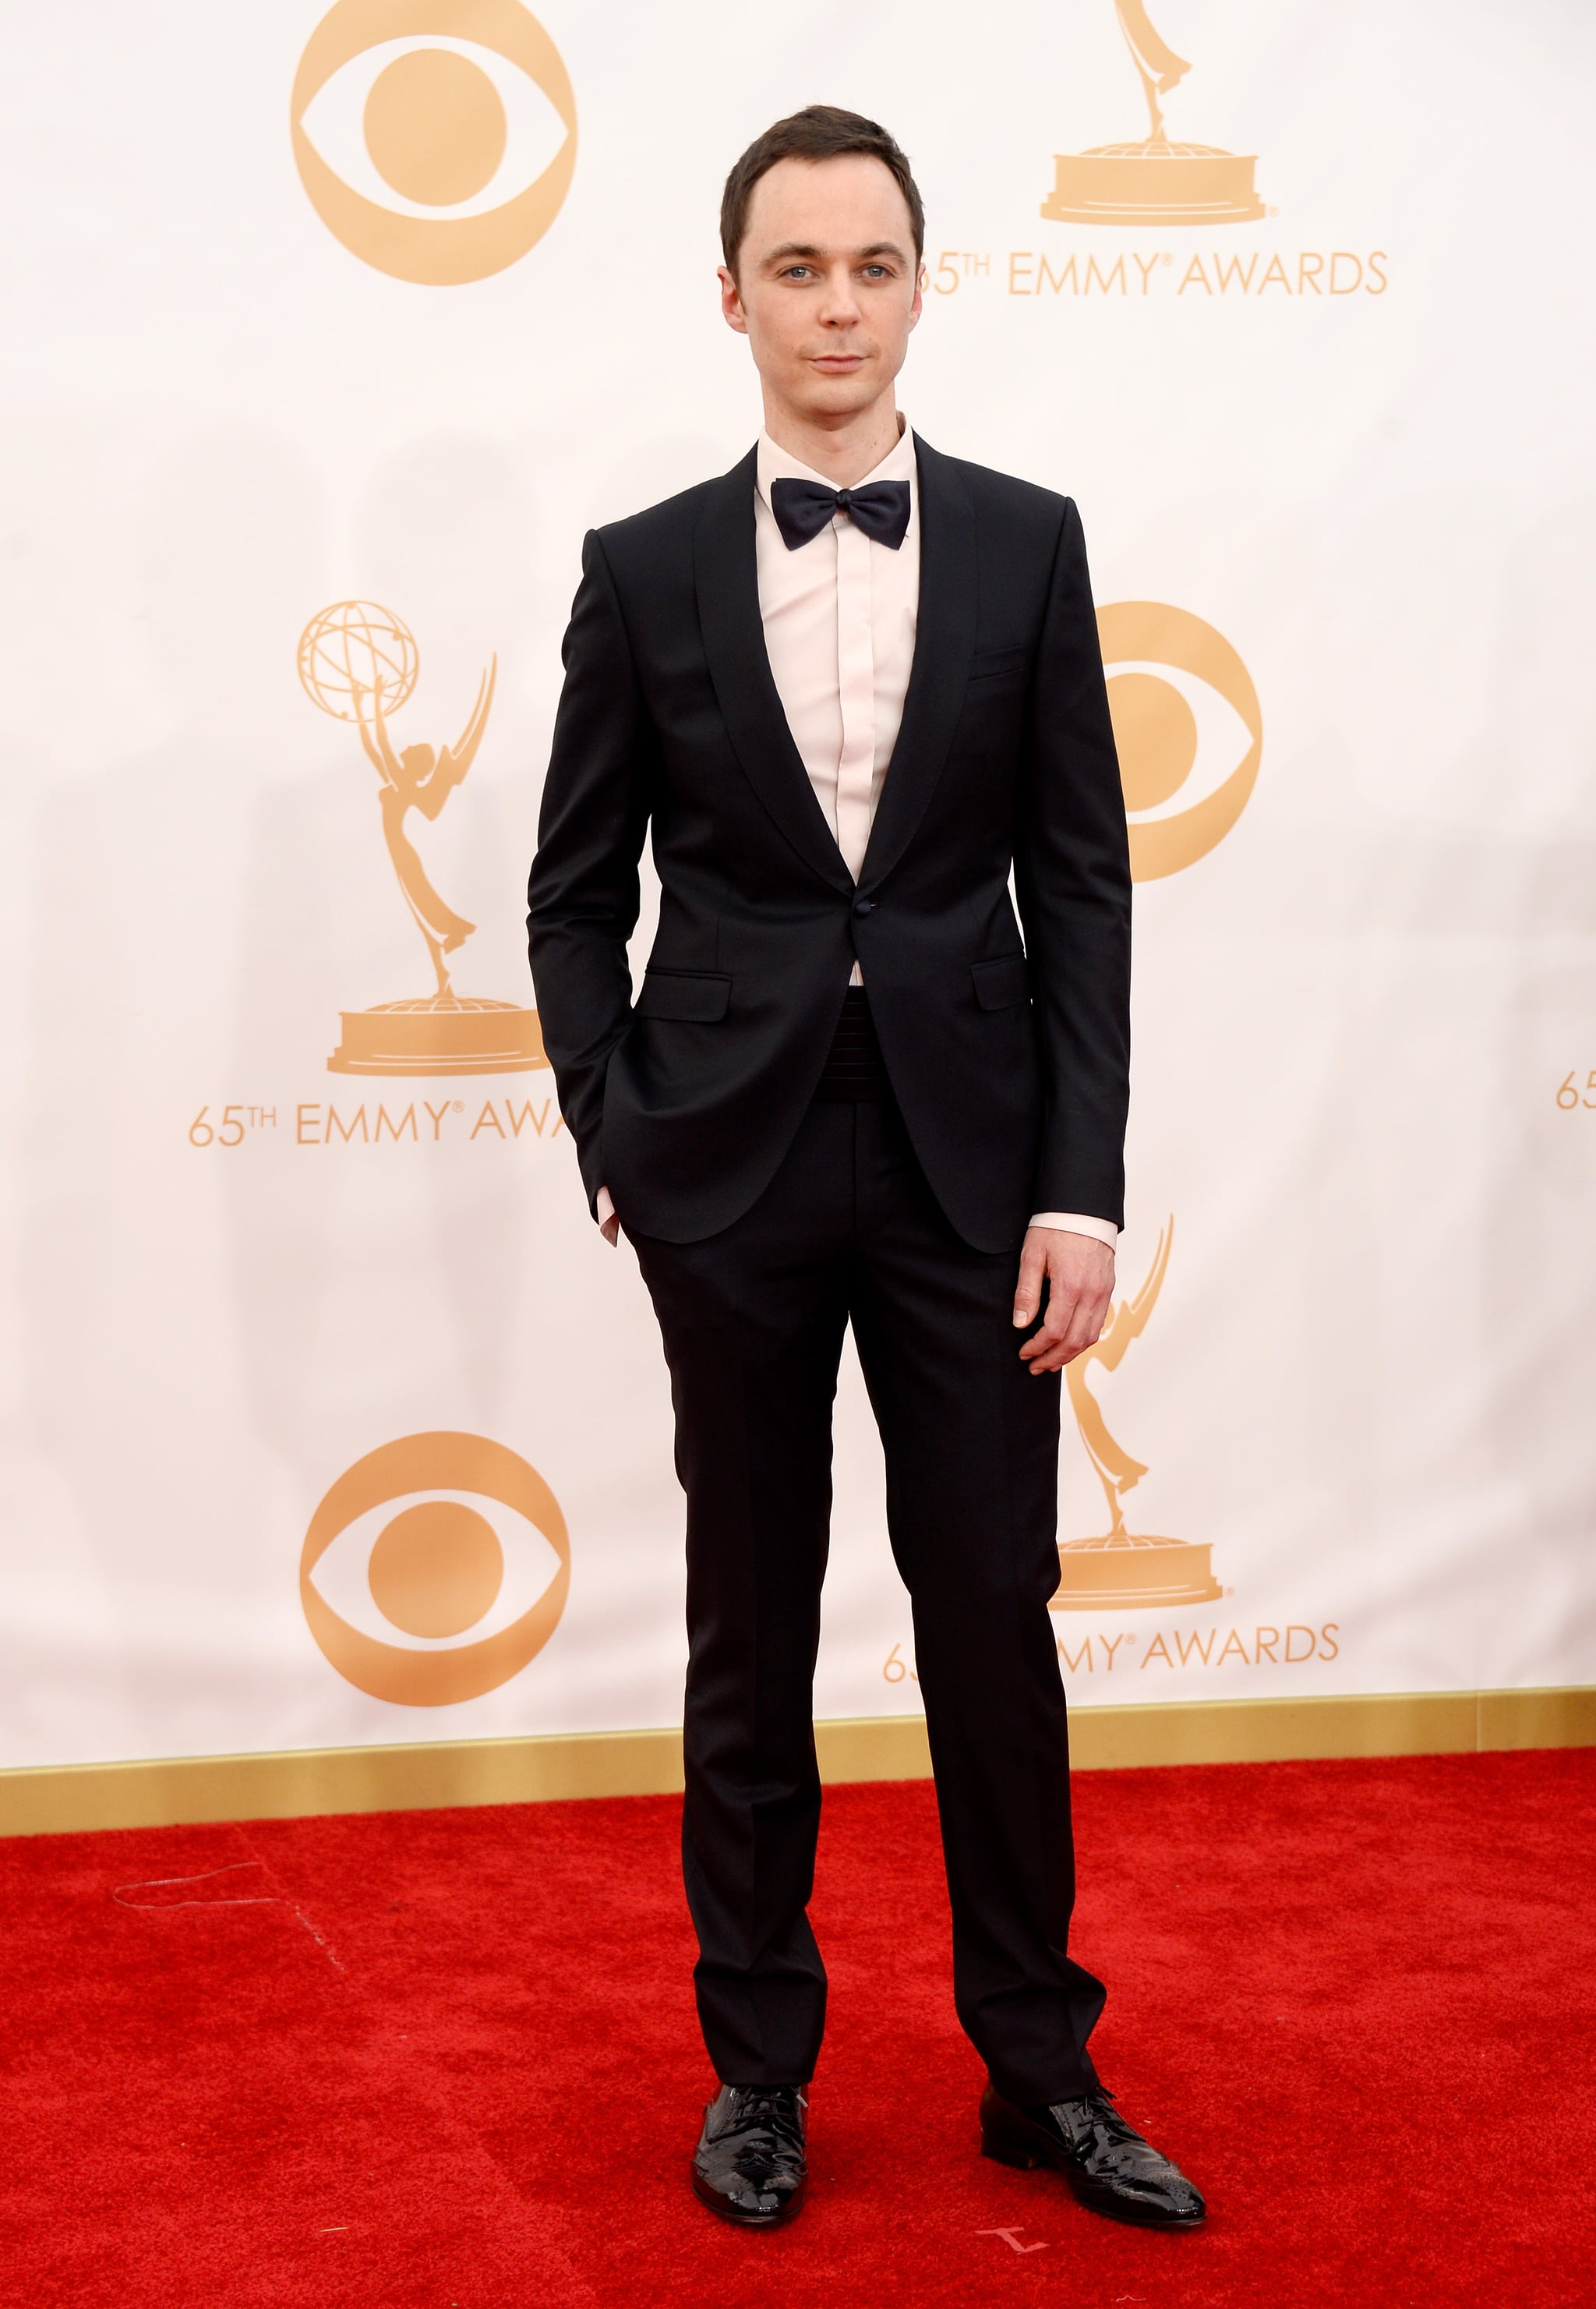 The Big Bang Theory's Jim Parsons attended the Emmys.